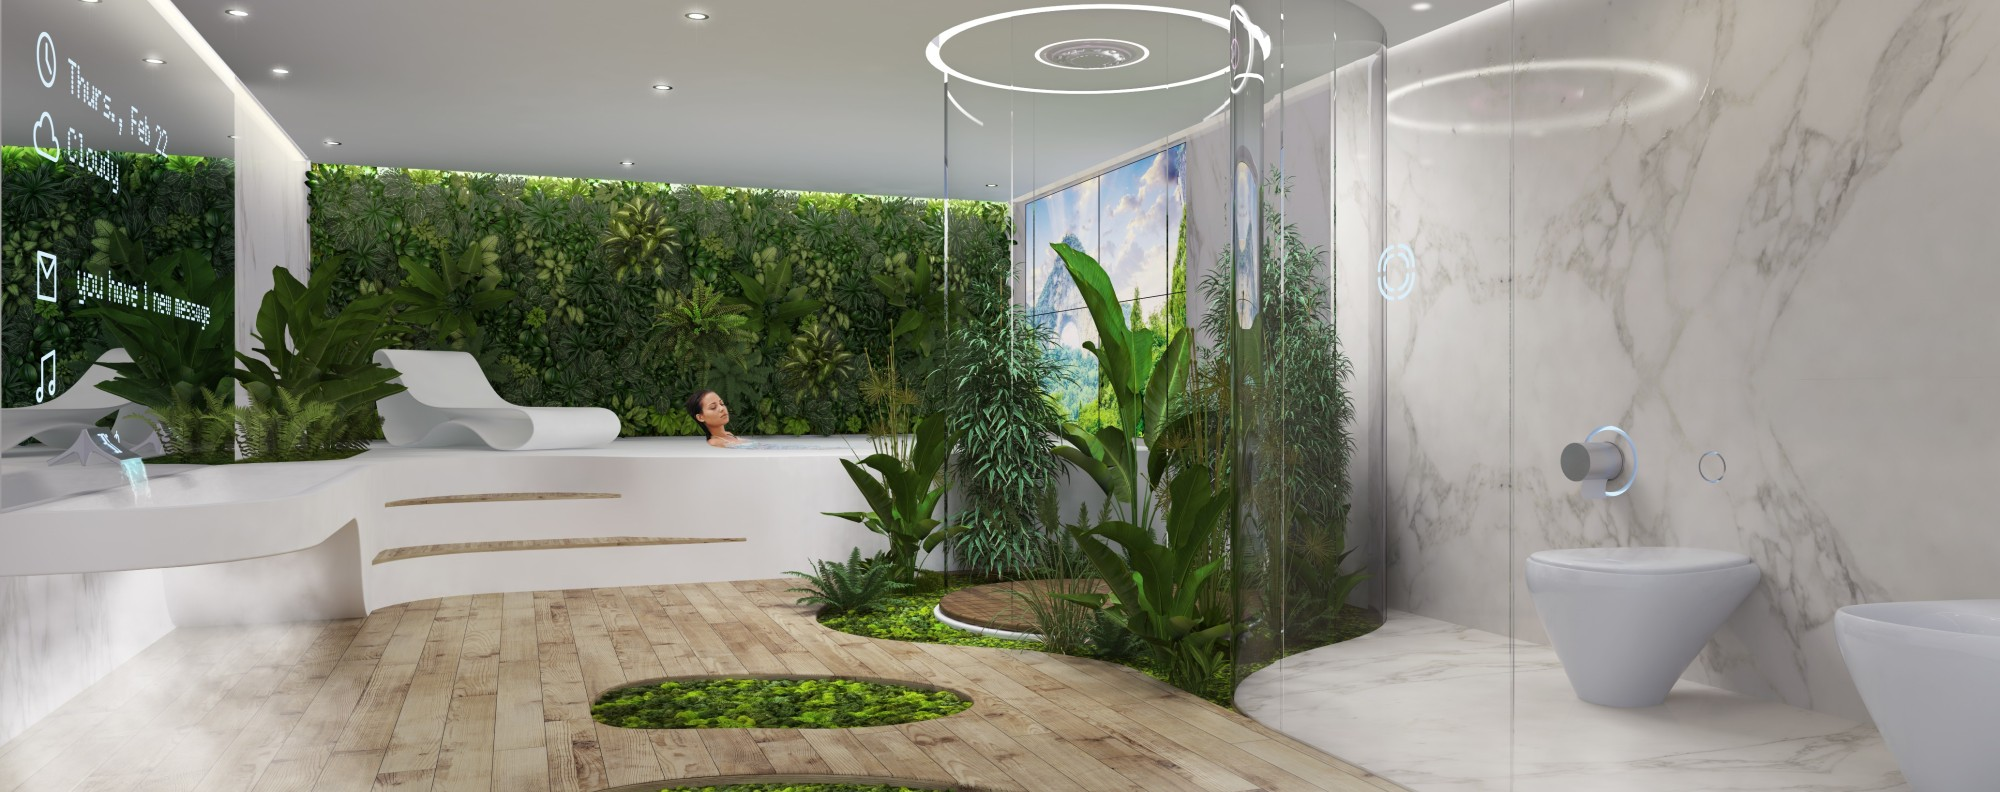 DesignLibero\u0027s bathroom is a marriage of technological innovation and natural power. & Luxury bathroom marries tech and nature for HK$2.9 million   Style ...